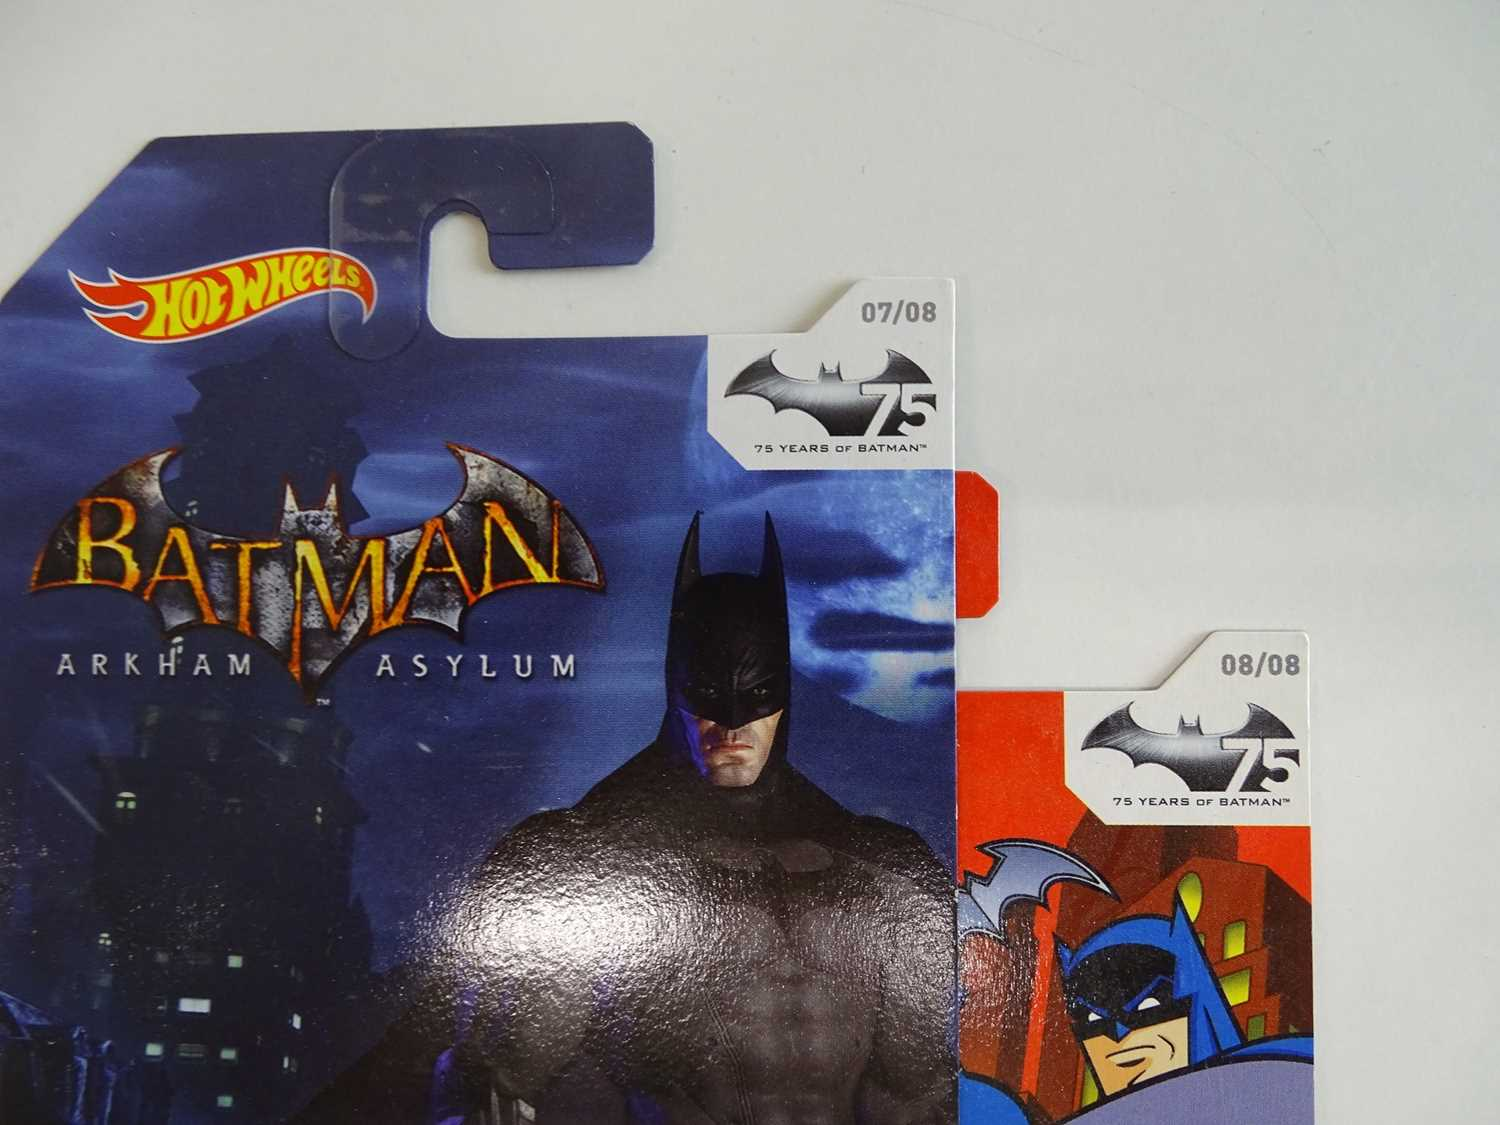 BATMAN LOT (9 in Lot) - Selection of various Batmobiles (8) from Hot Wheels all presented sealed - Image 7 of 7